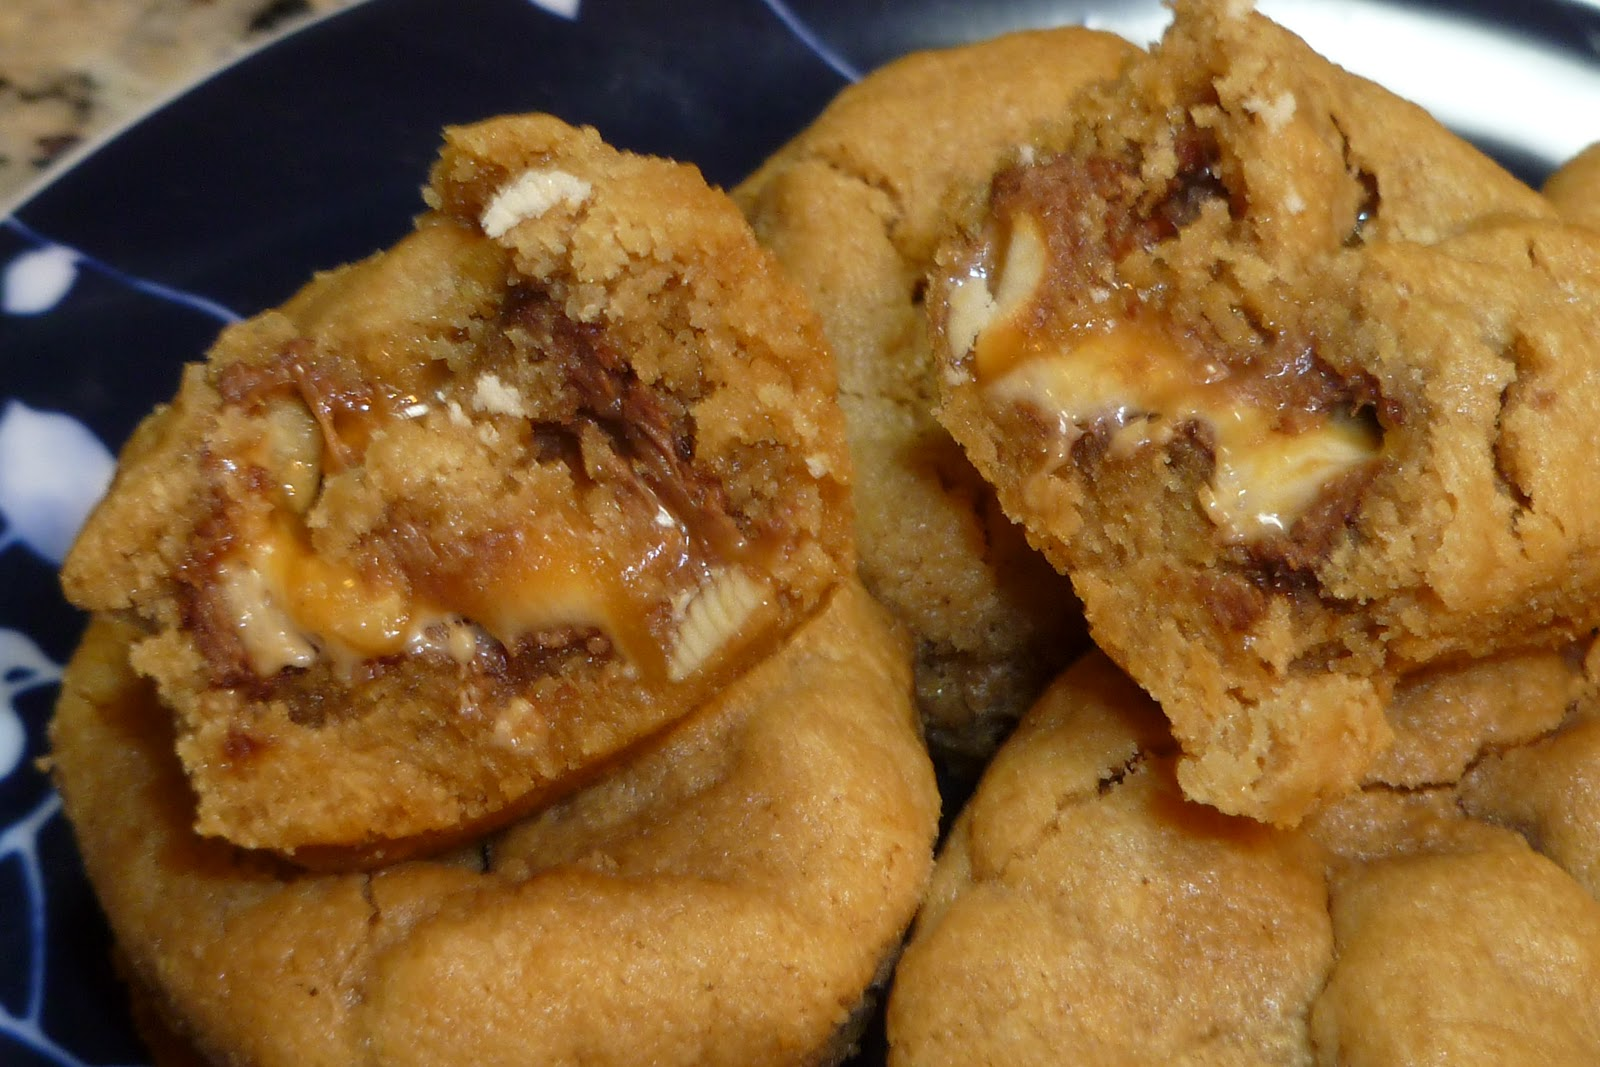 The Pastry Chef's Baking: Snickers-stuffed Peanut Butter Cookies